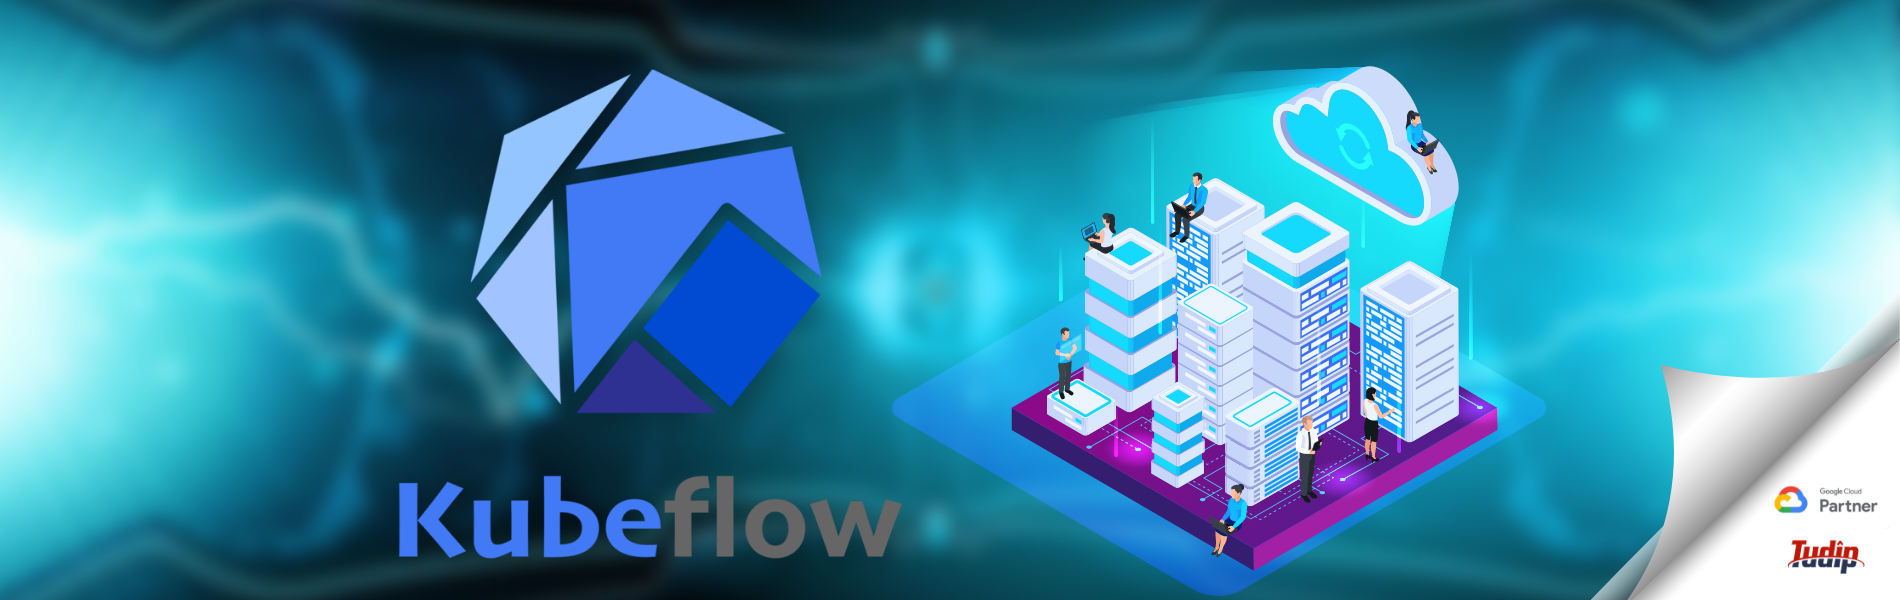 kubeflow_pipelines_Changed_Website